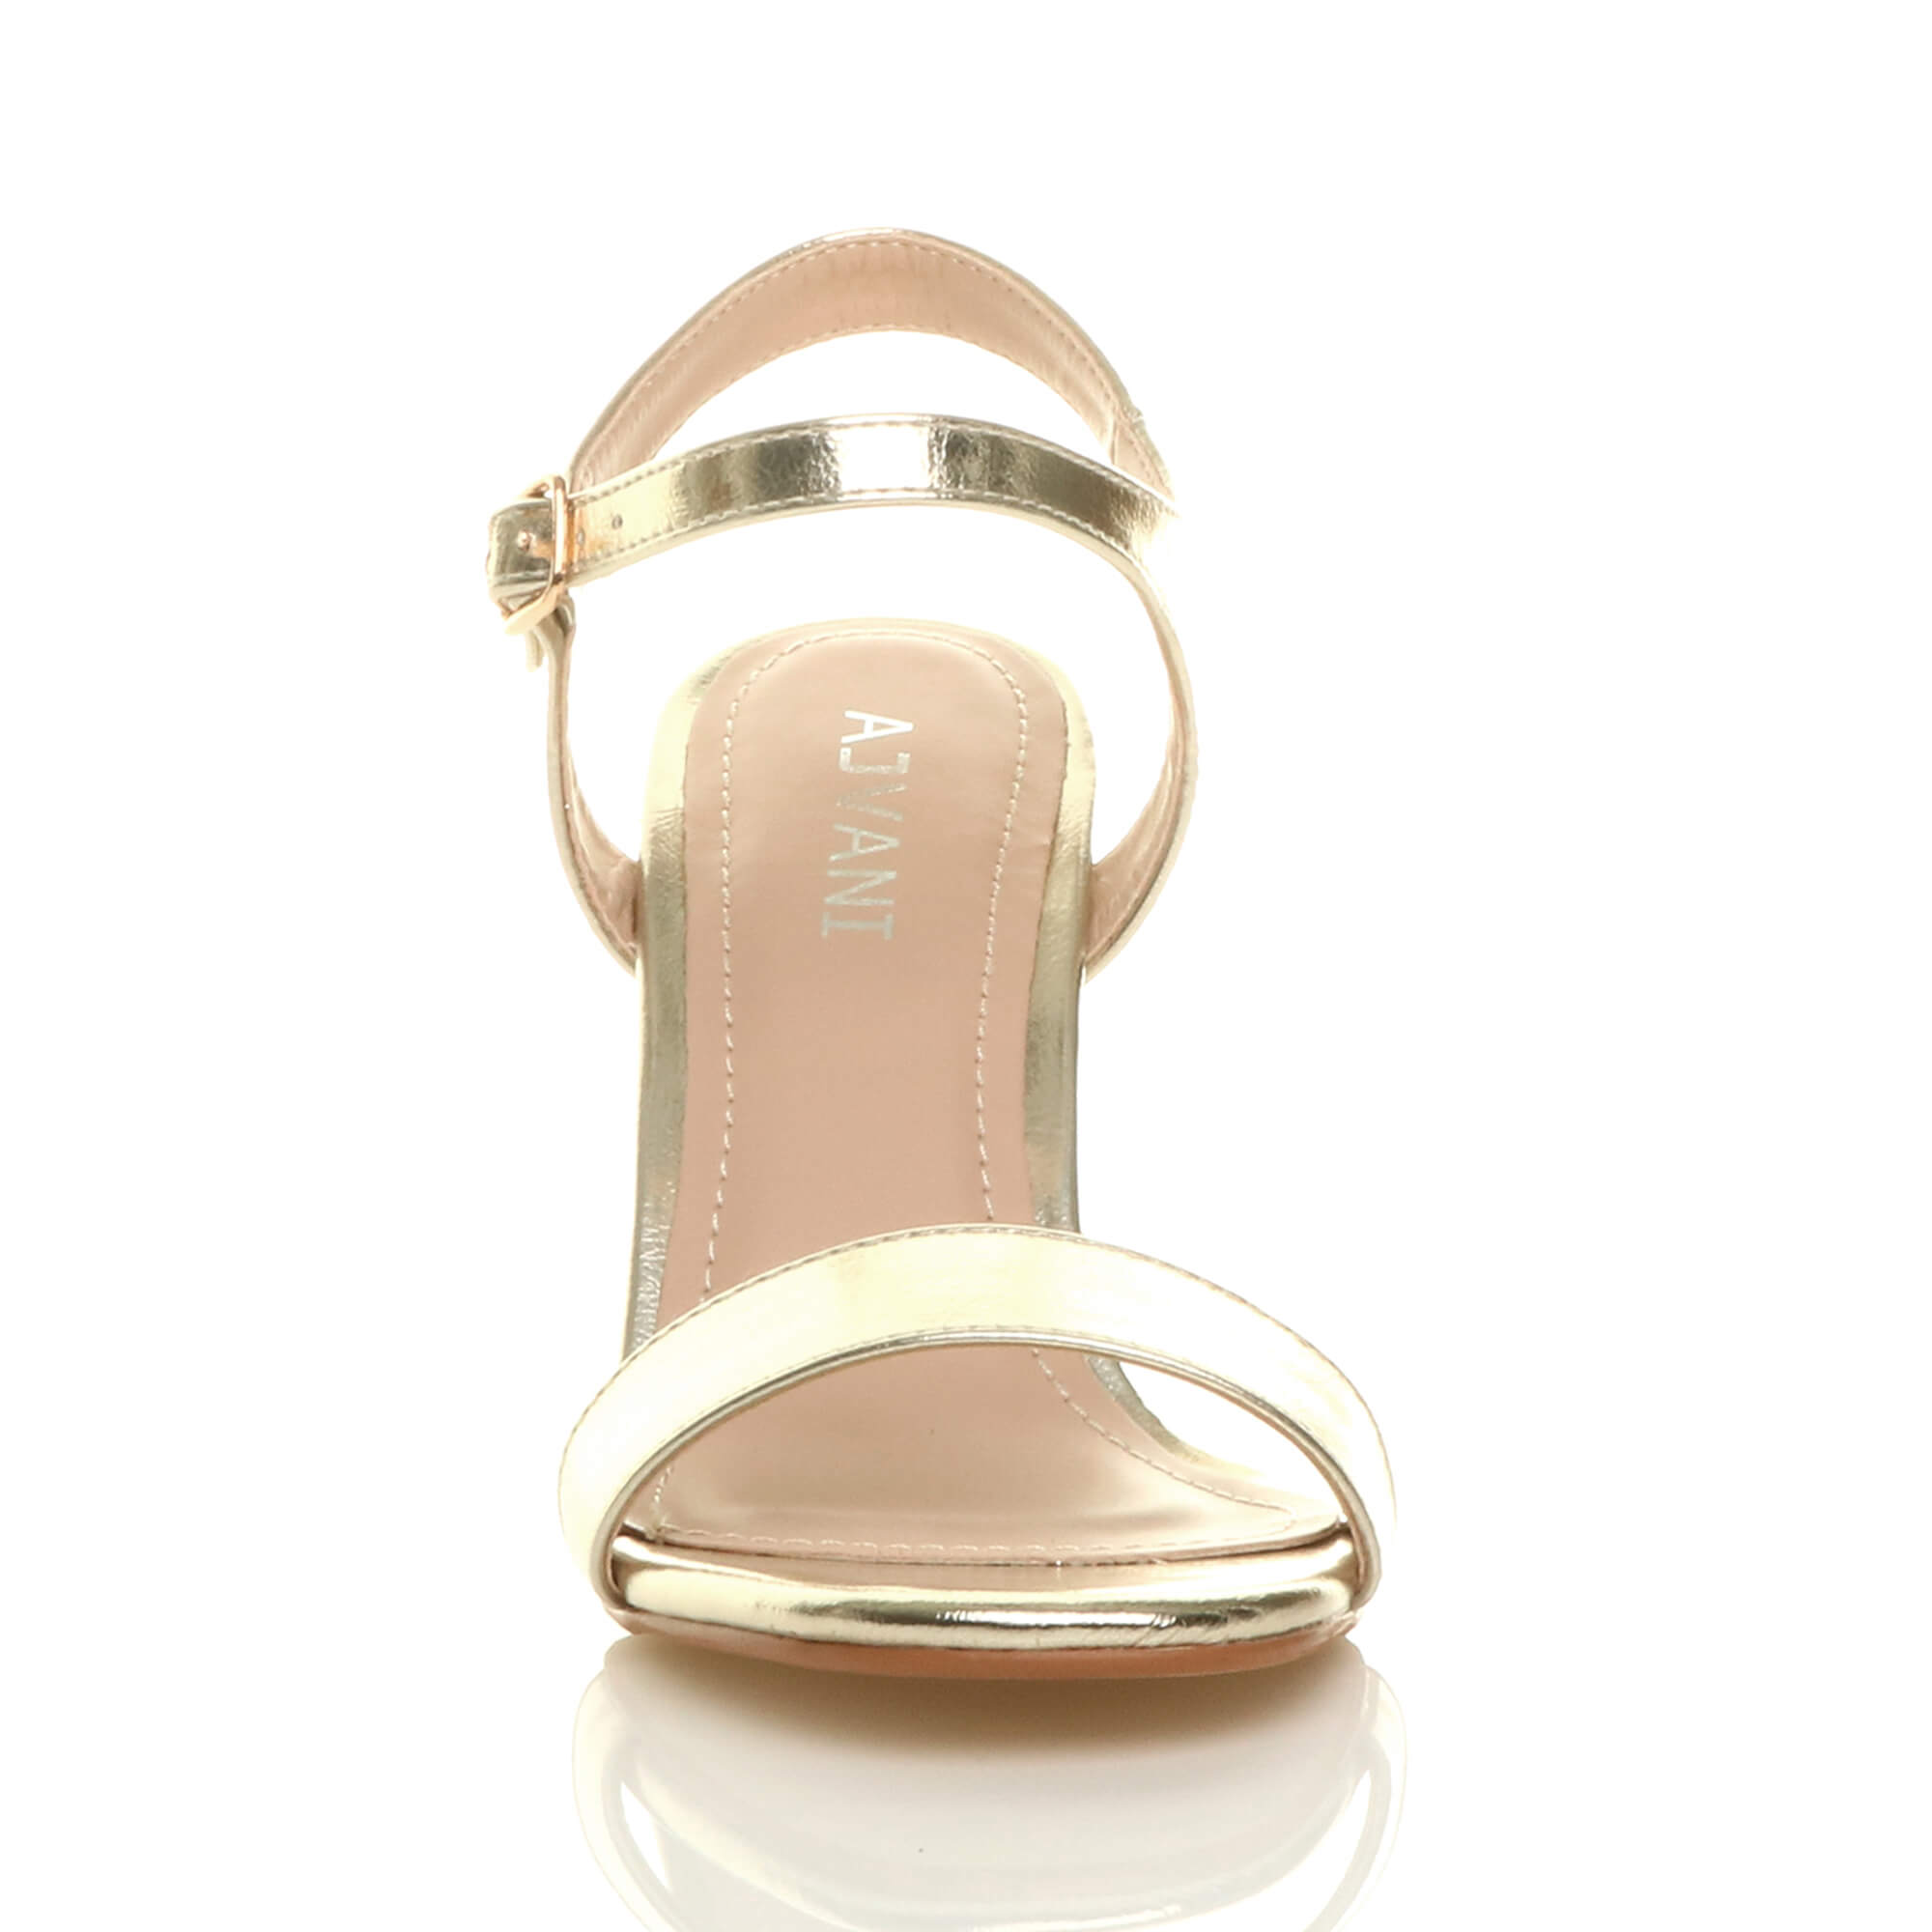 WOMENS-LADIES-HIGH-HEEL-BUCKLE-STRAPPY-BASIC-BARELY-THERE-SANDALS-SHOES-SIZE thumbnail 48